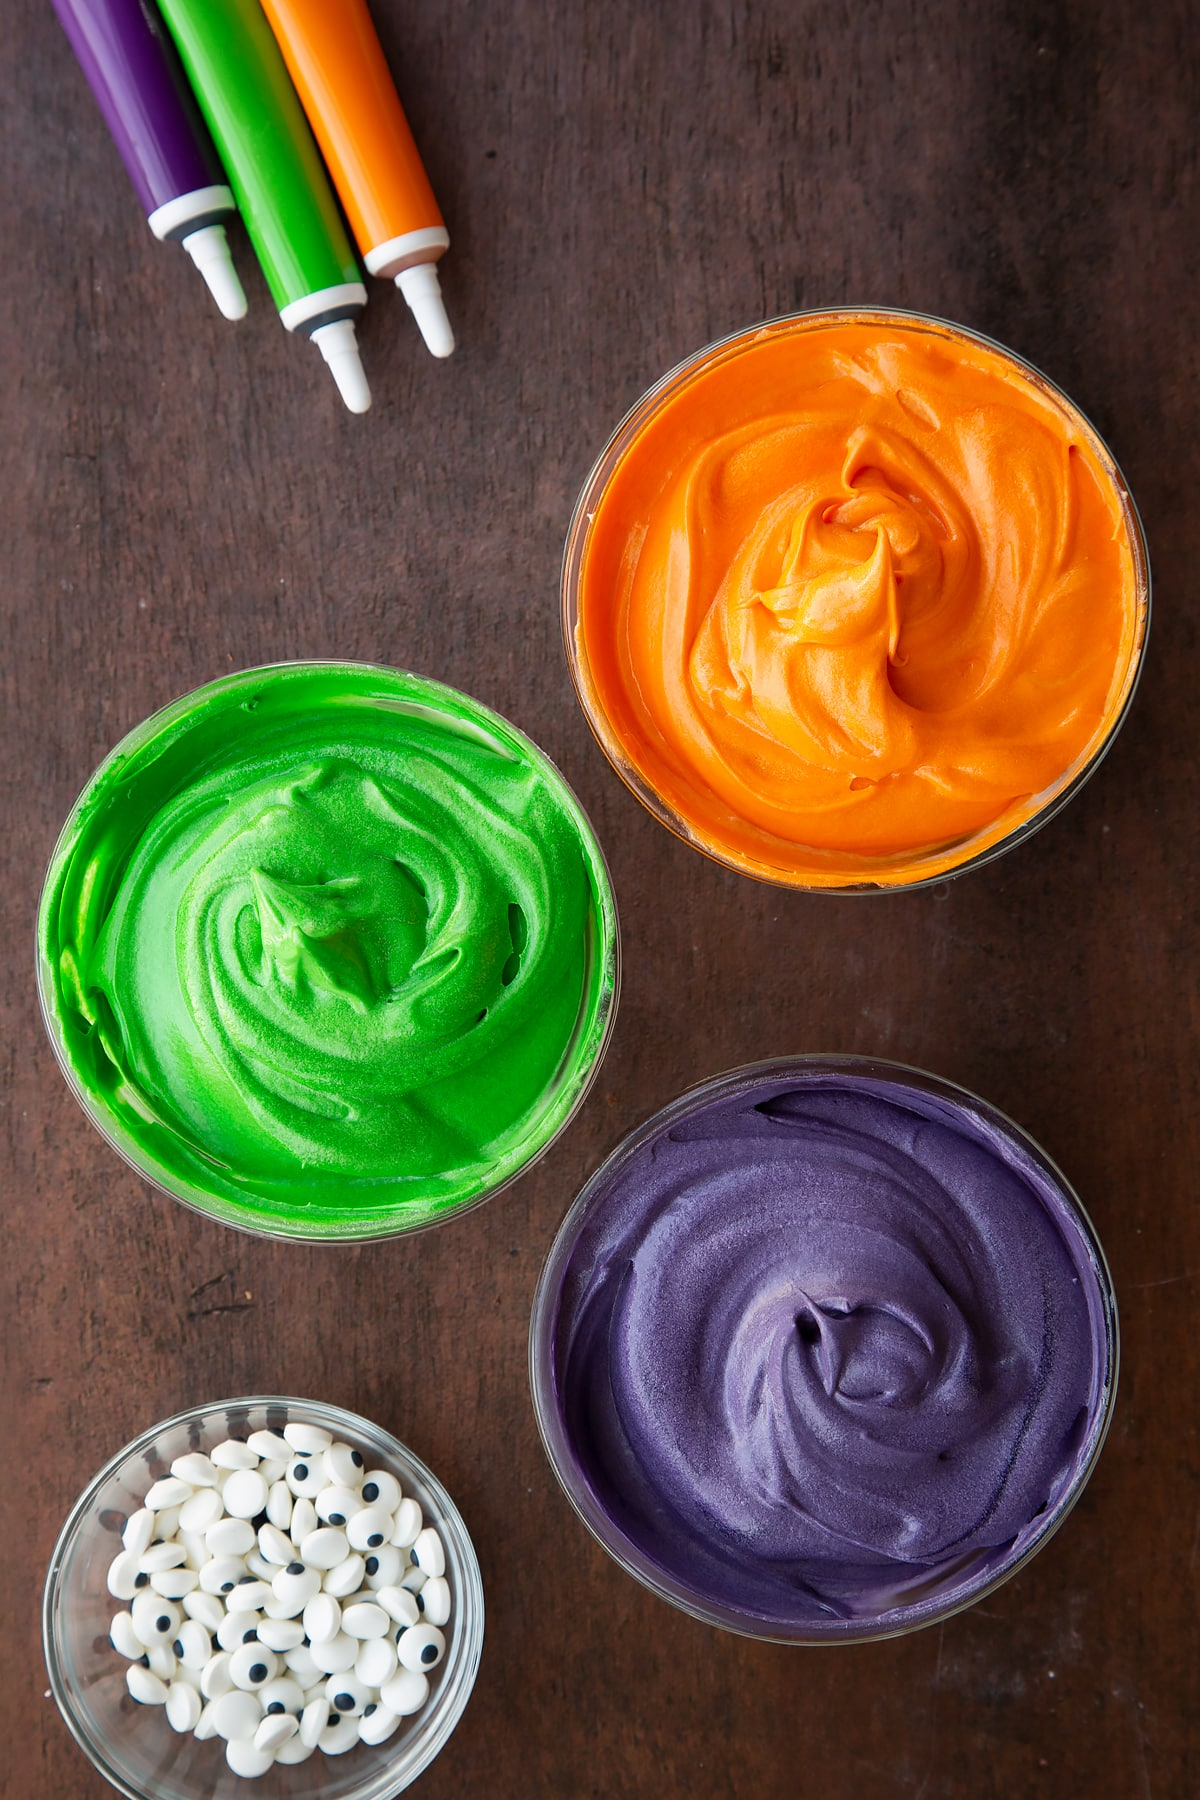 Cream cheese frosting in three glass bowls, coloured orange, green or purple.